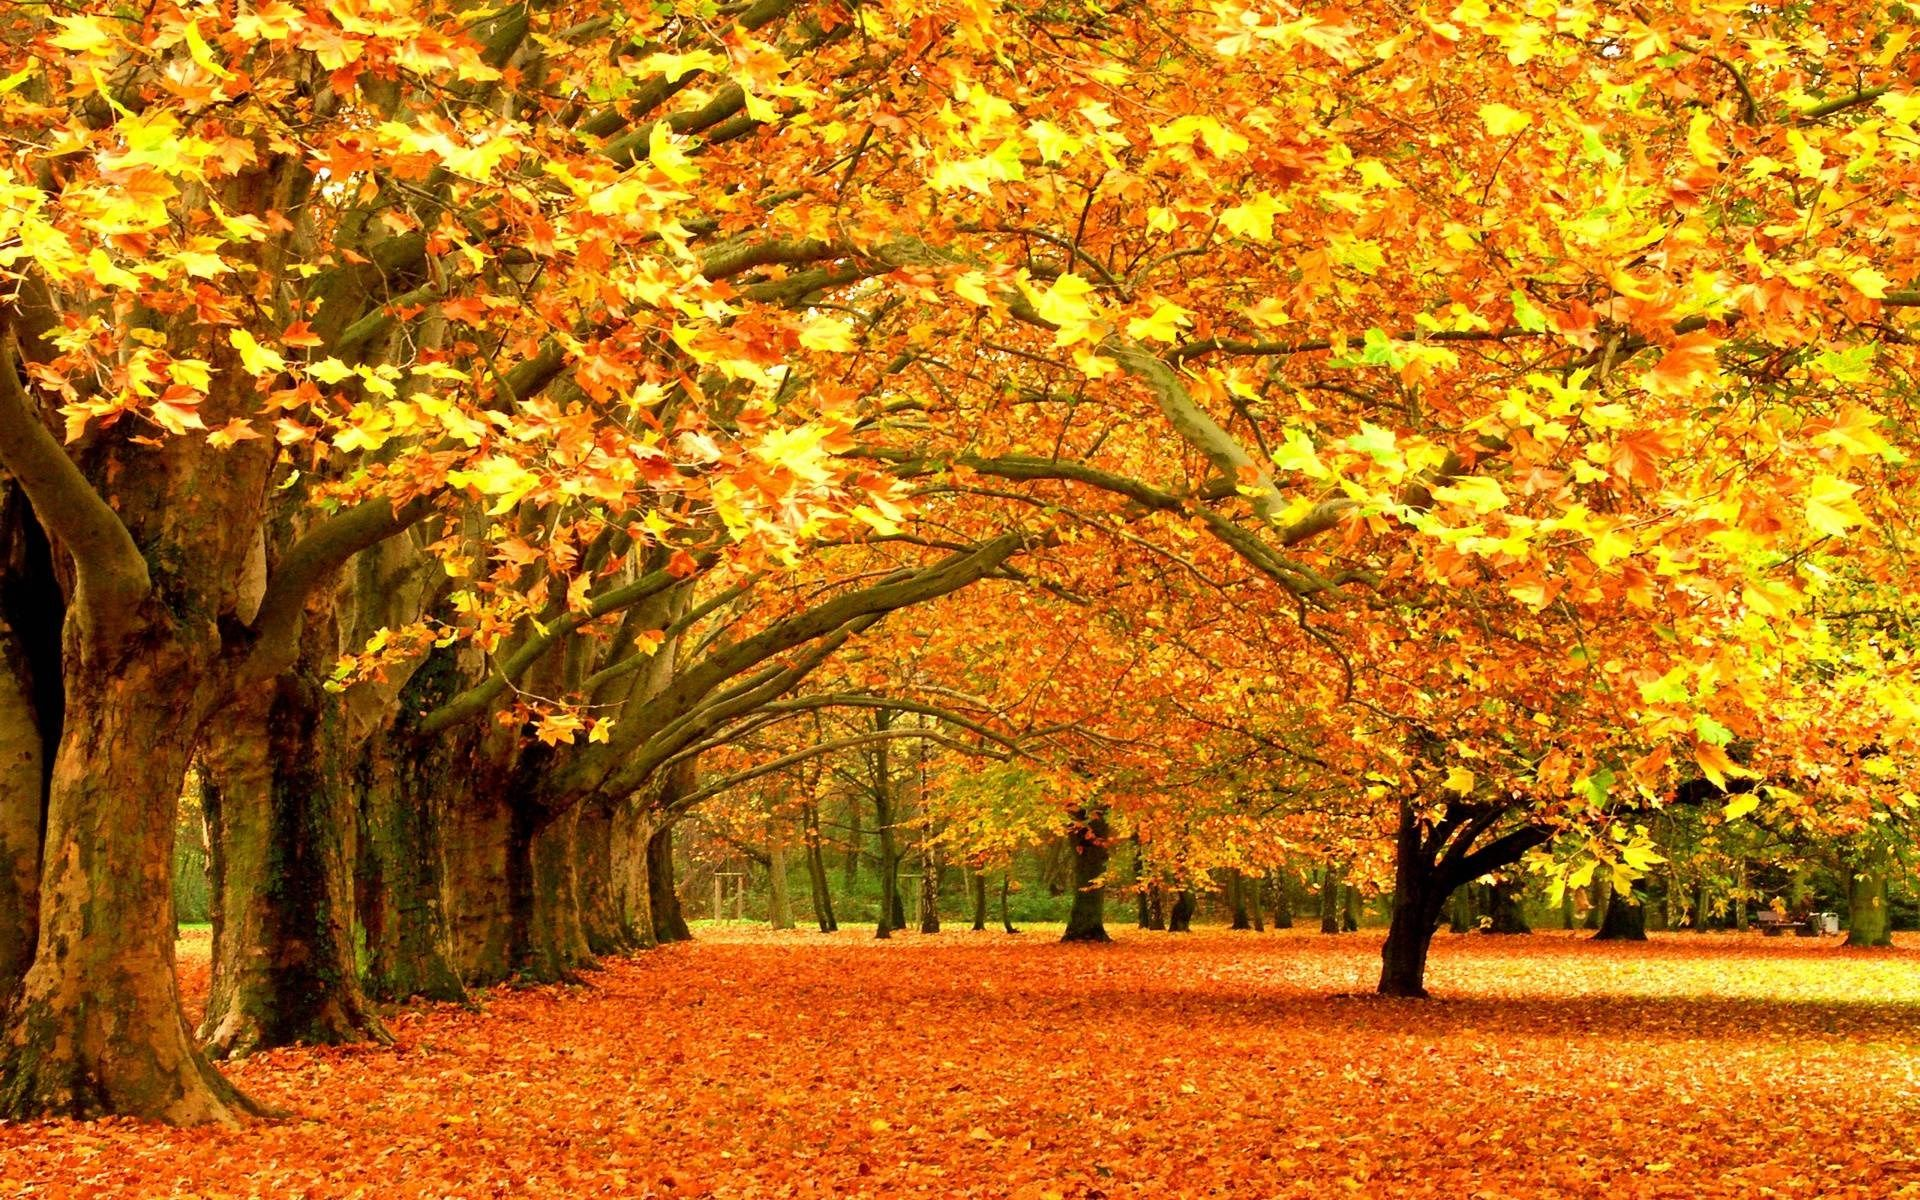 fall foliage wallpaper hd | ololoshenka | pinterest | autumn, autumn